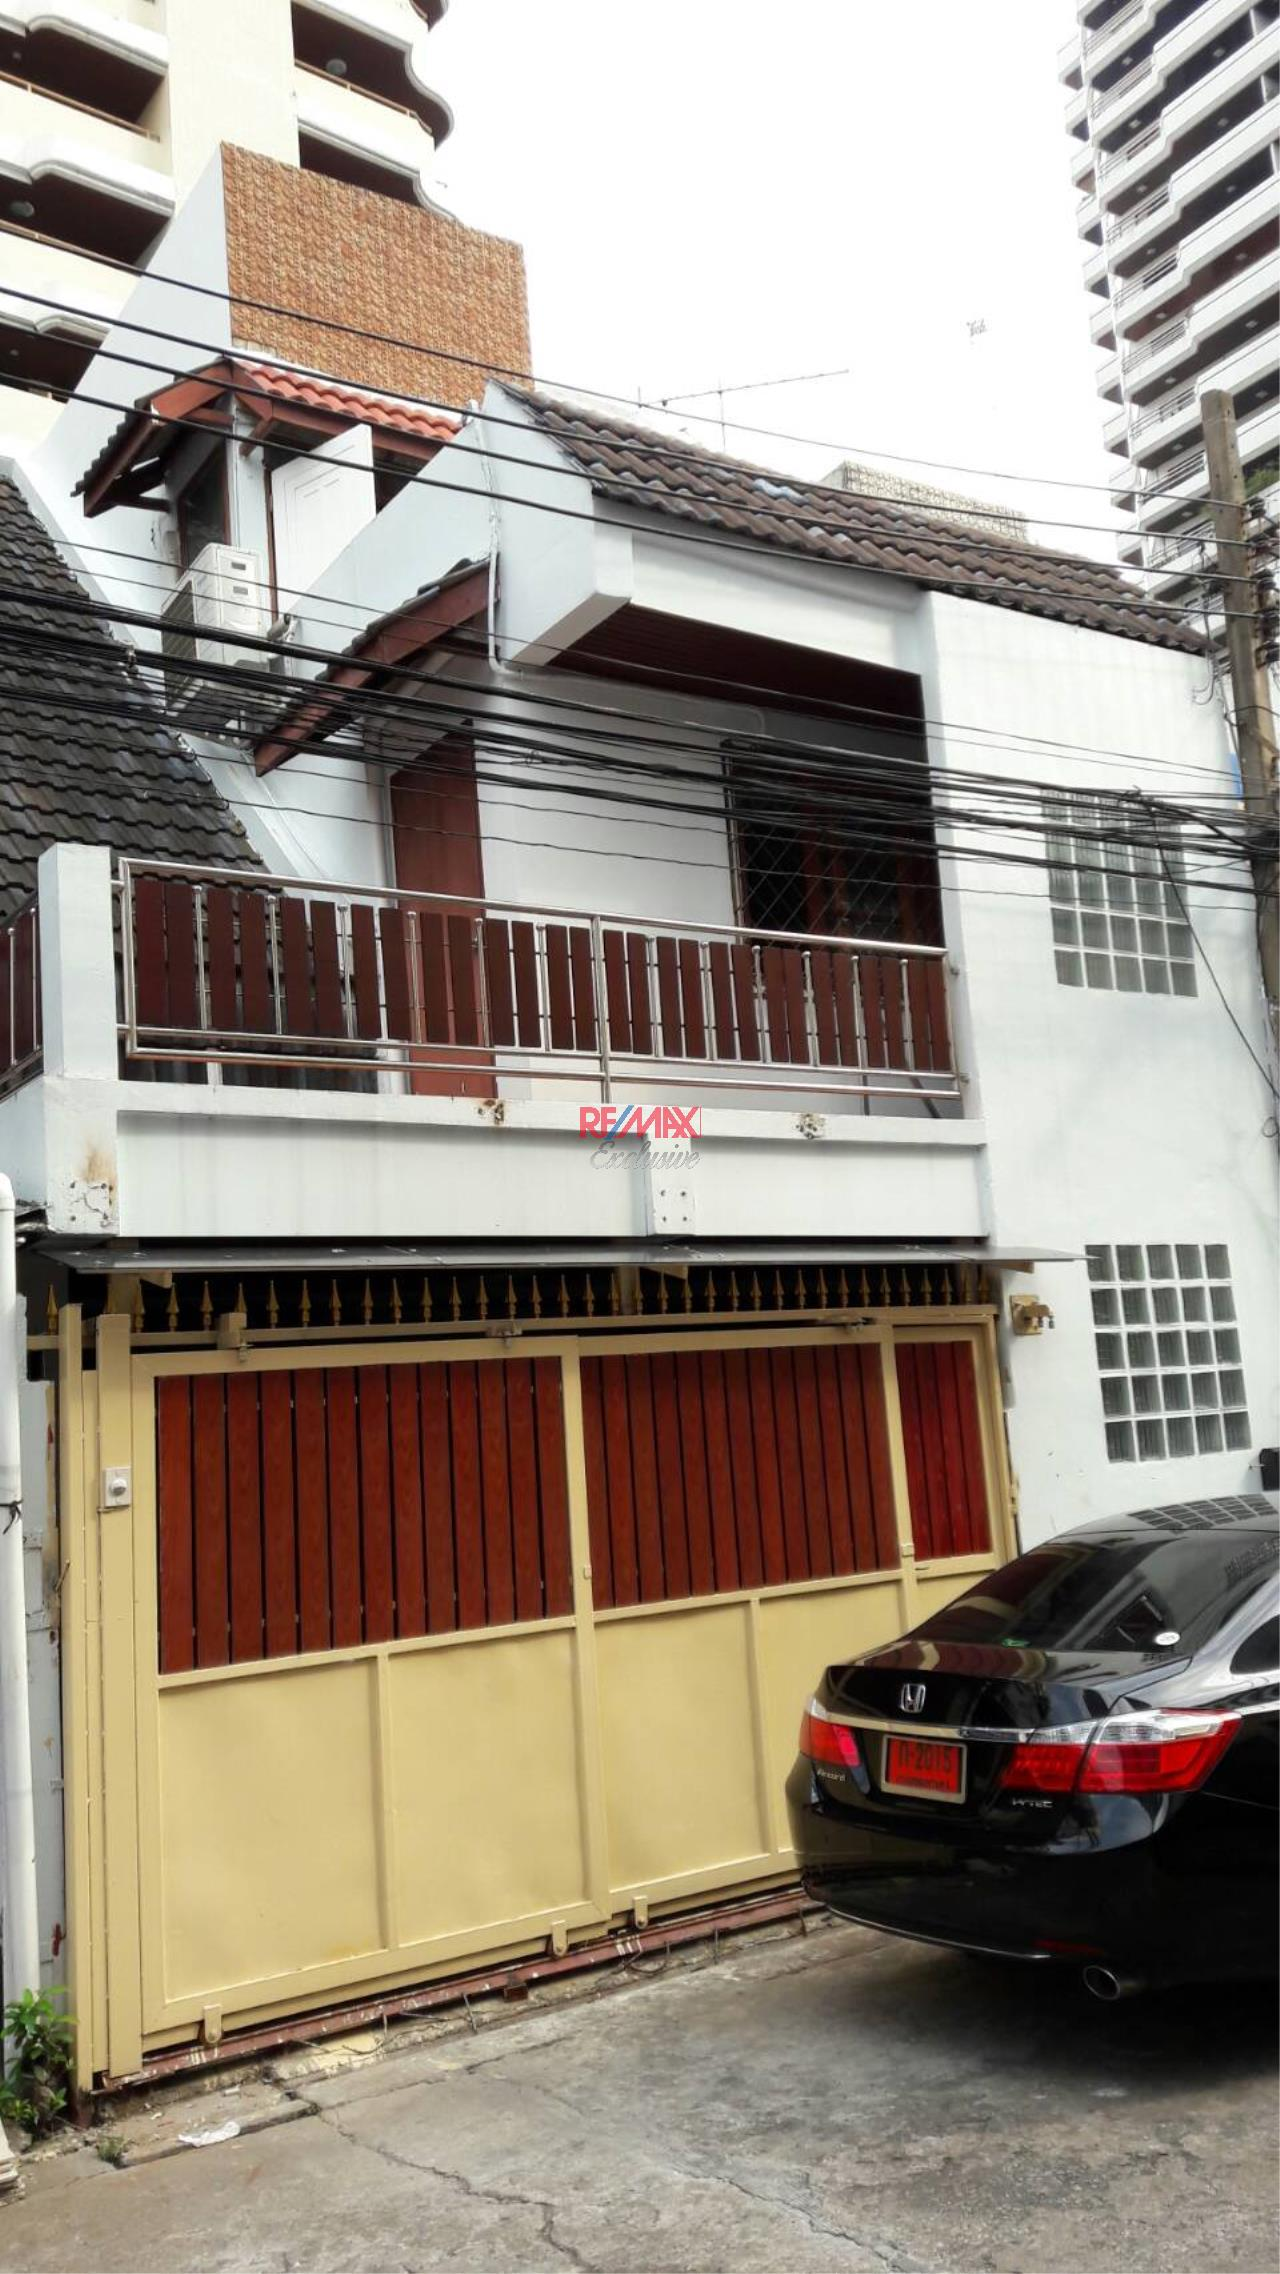 RE/MAX Exclusive Agency's Townhouse for Office or Business Purpose for Rent!! 6